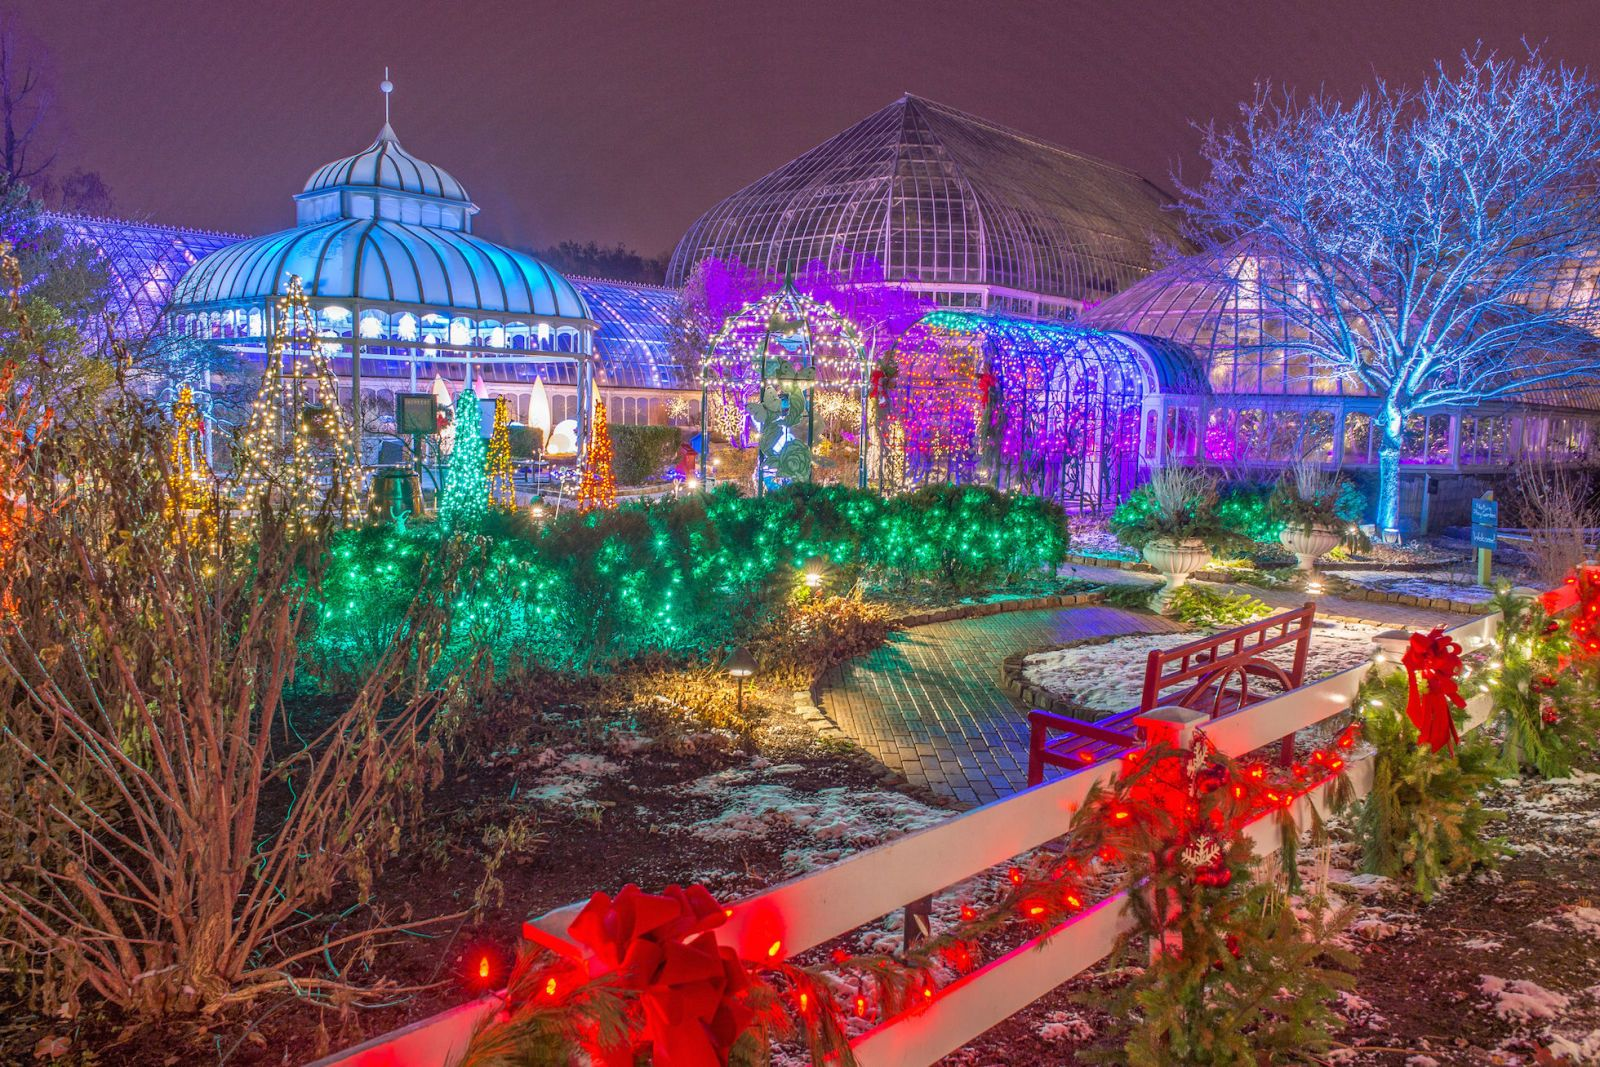 9 Botanical Gardens That Are More Beautiful at Night (With